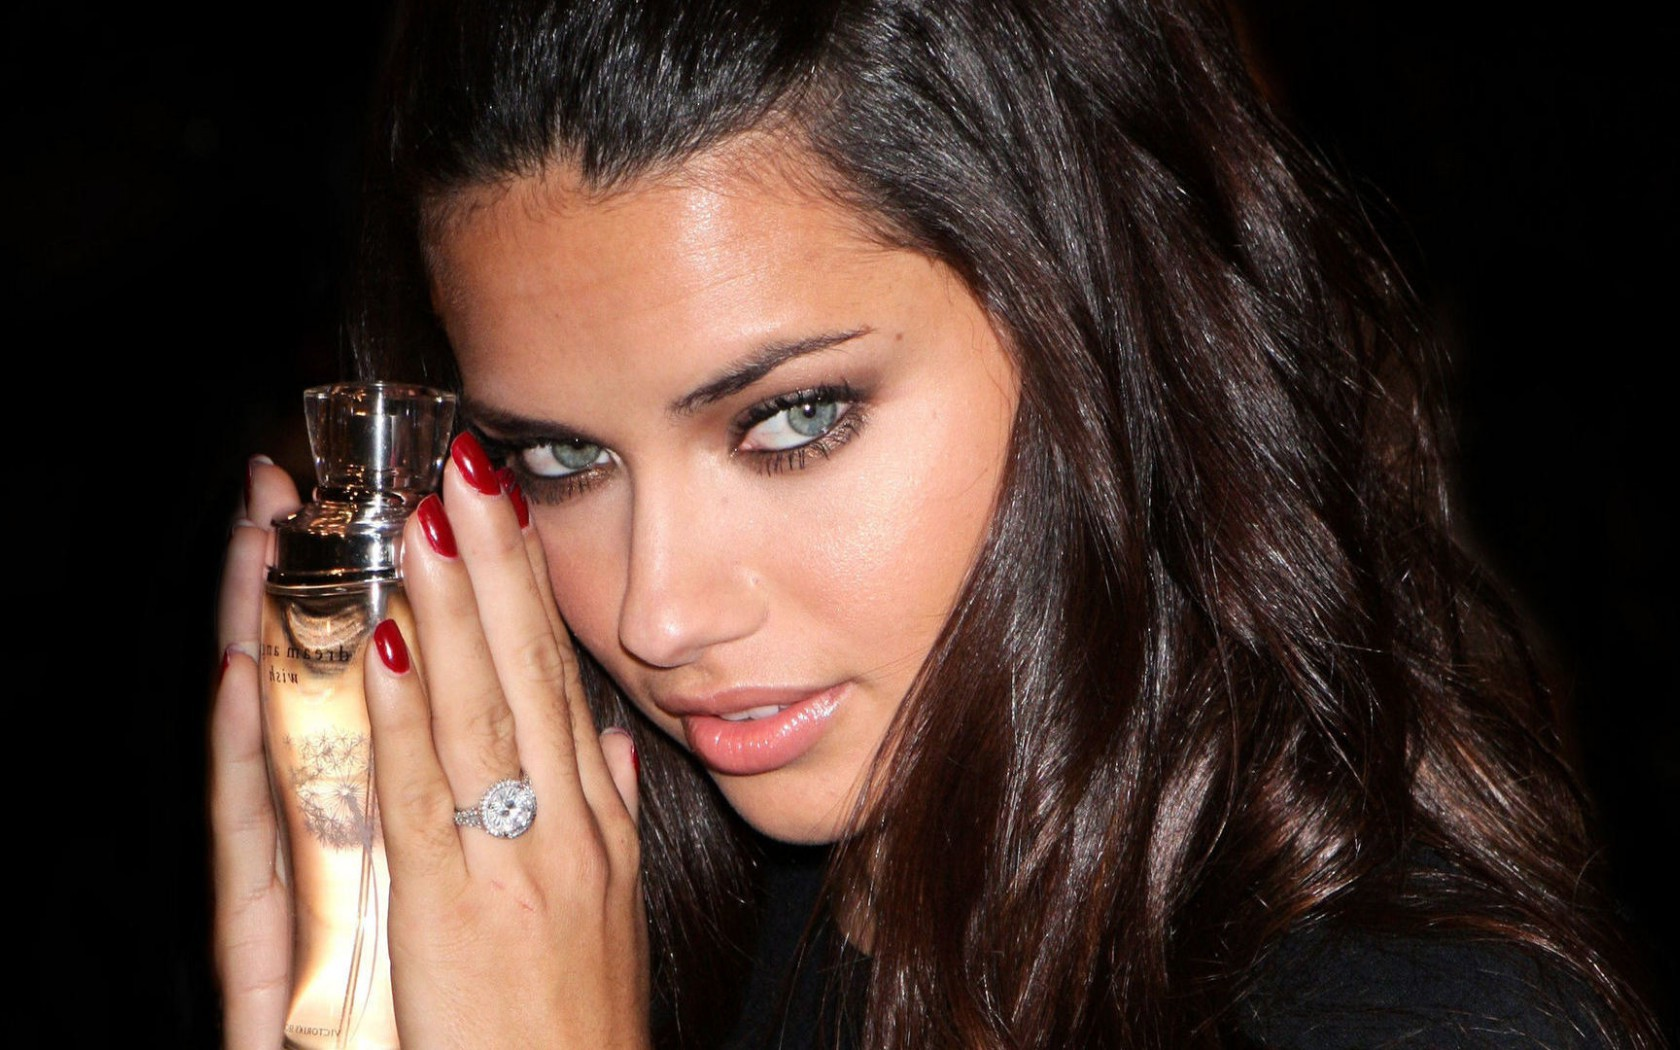 adriana lima model perfume photo image free download